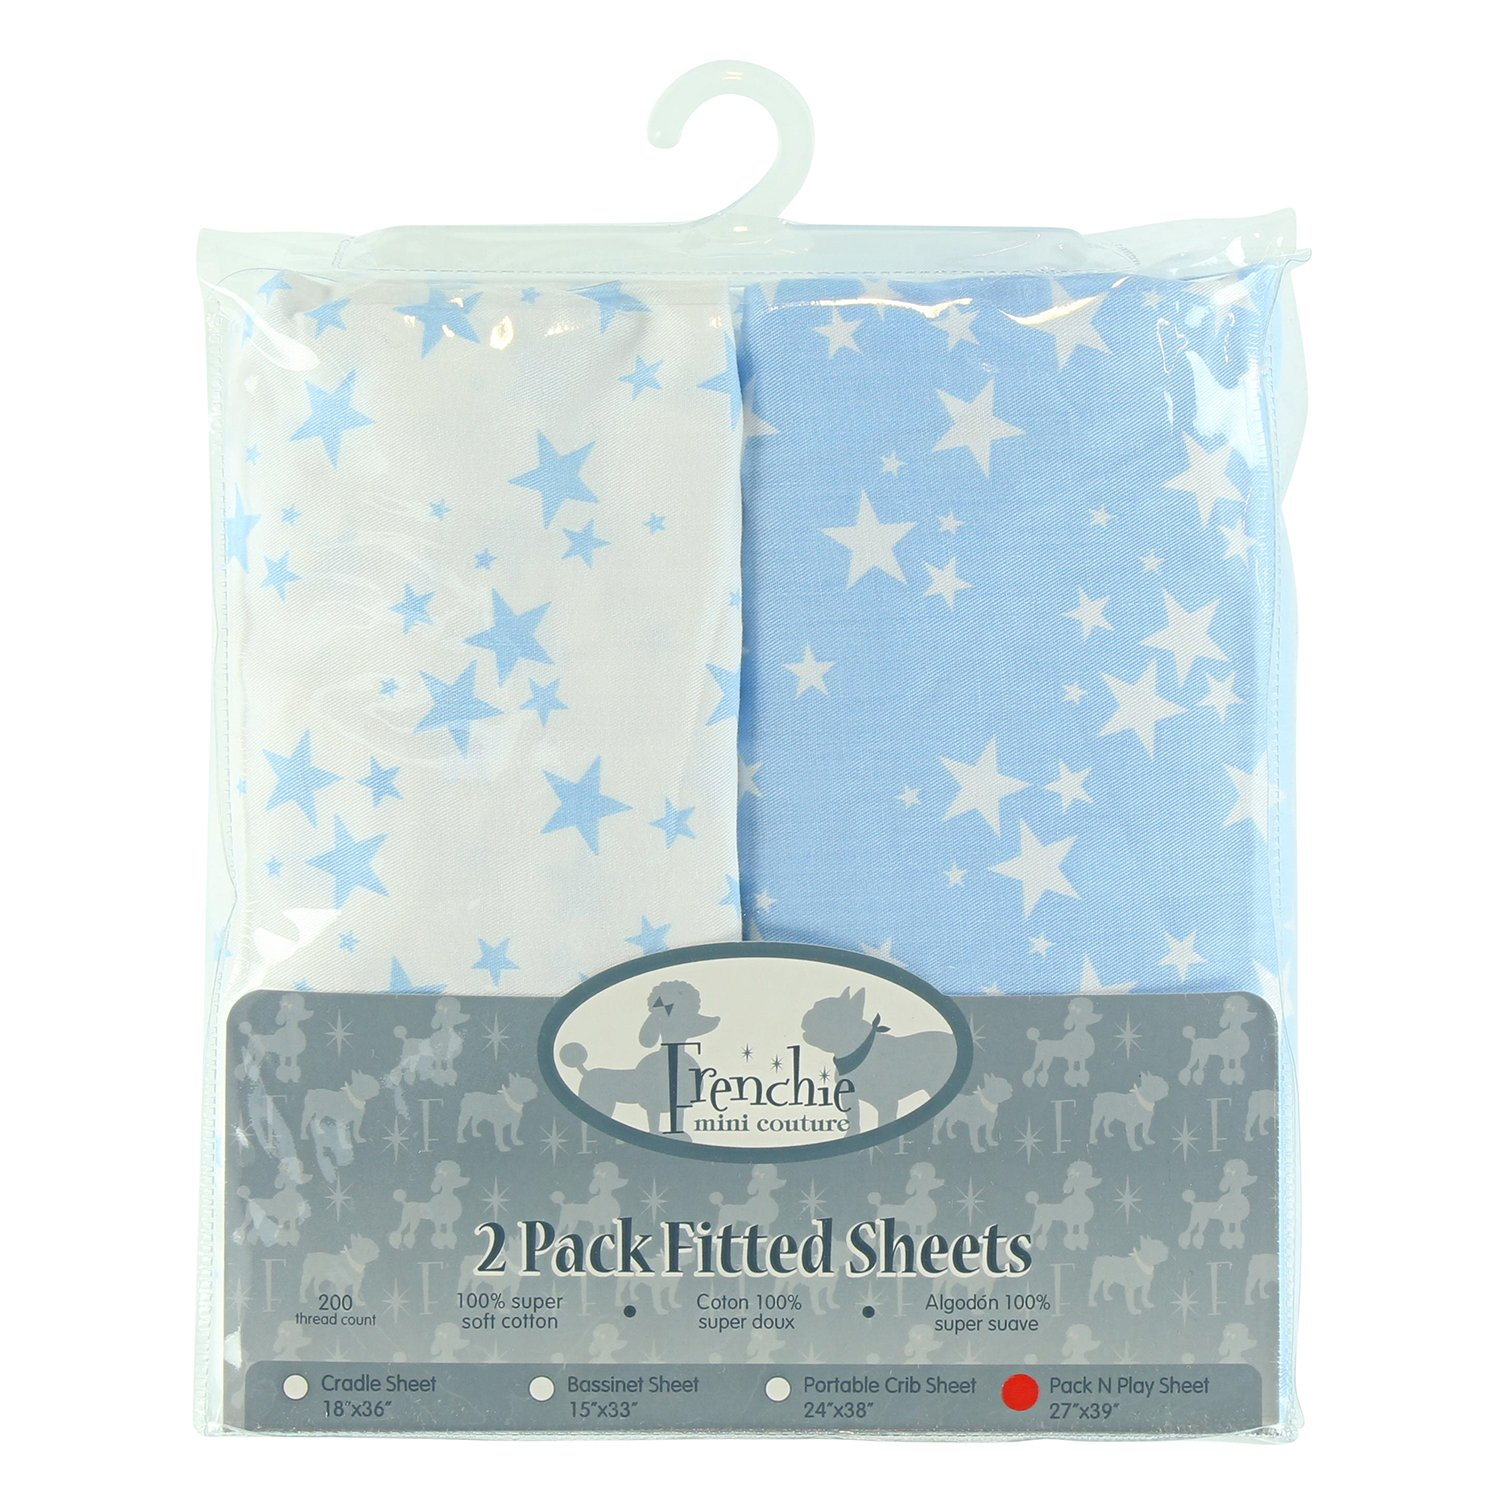 2 Pack Fitted Pack N Play Sheets, Blue Stars, Frenchie Mini Couture 918